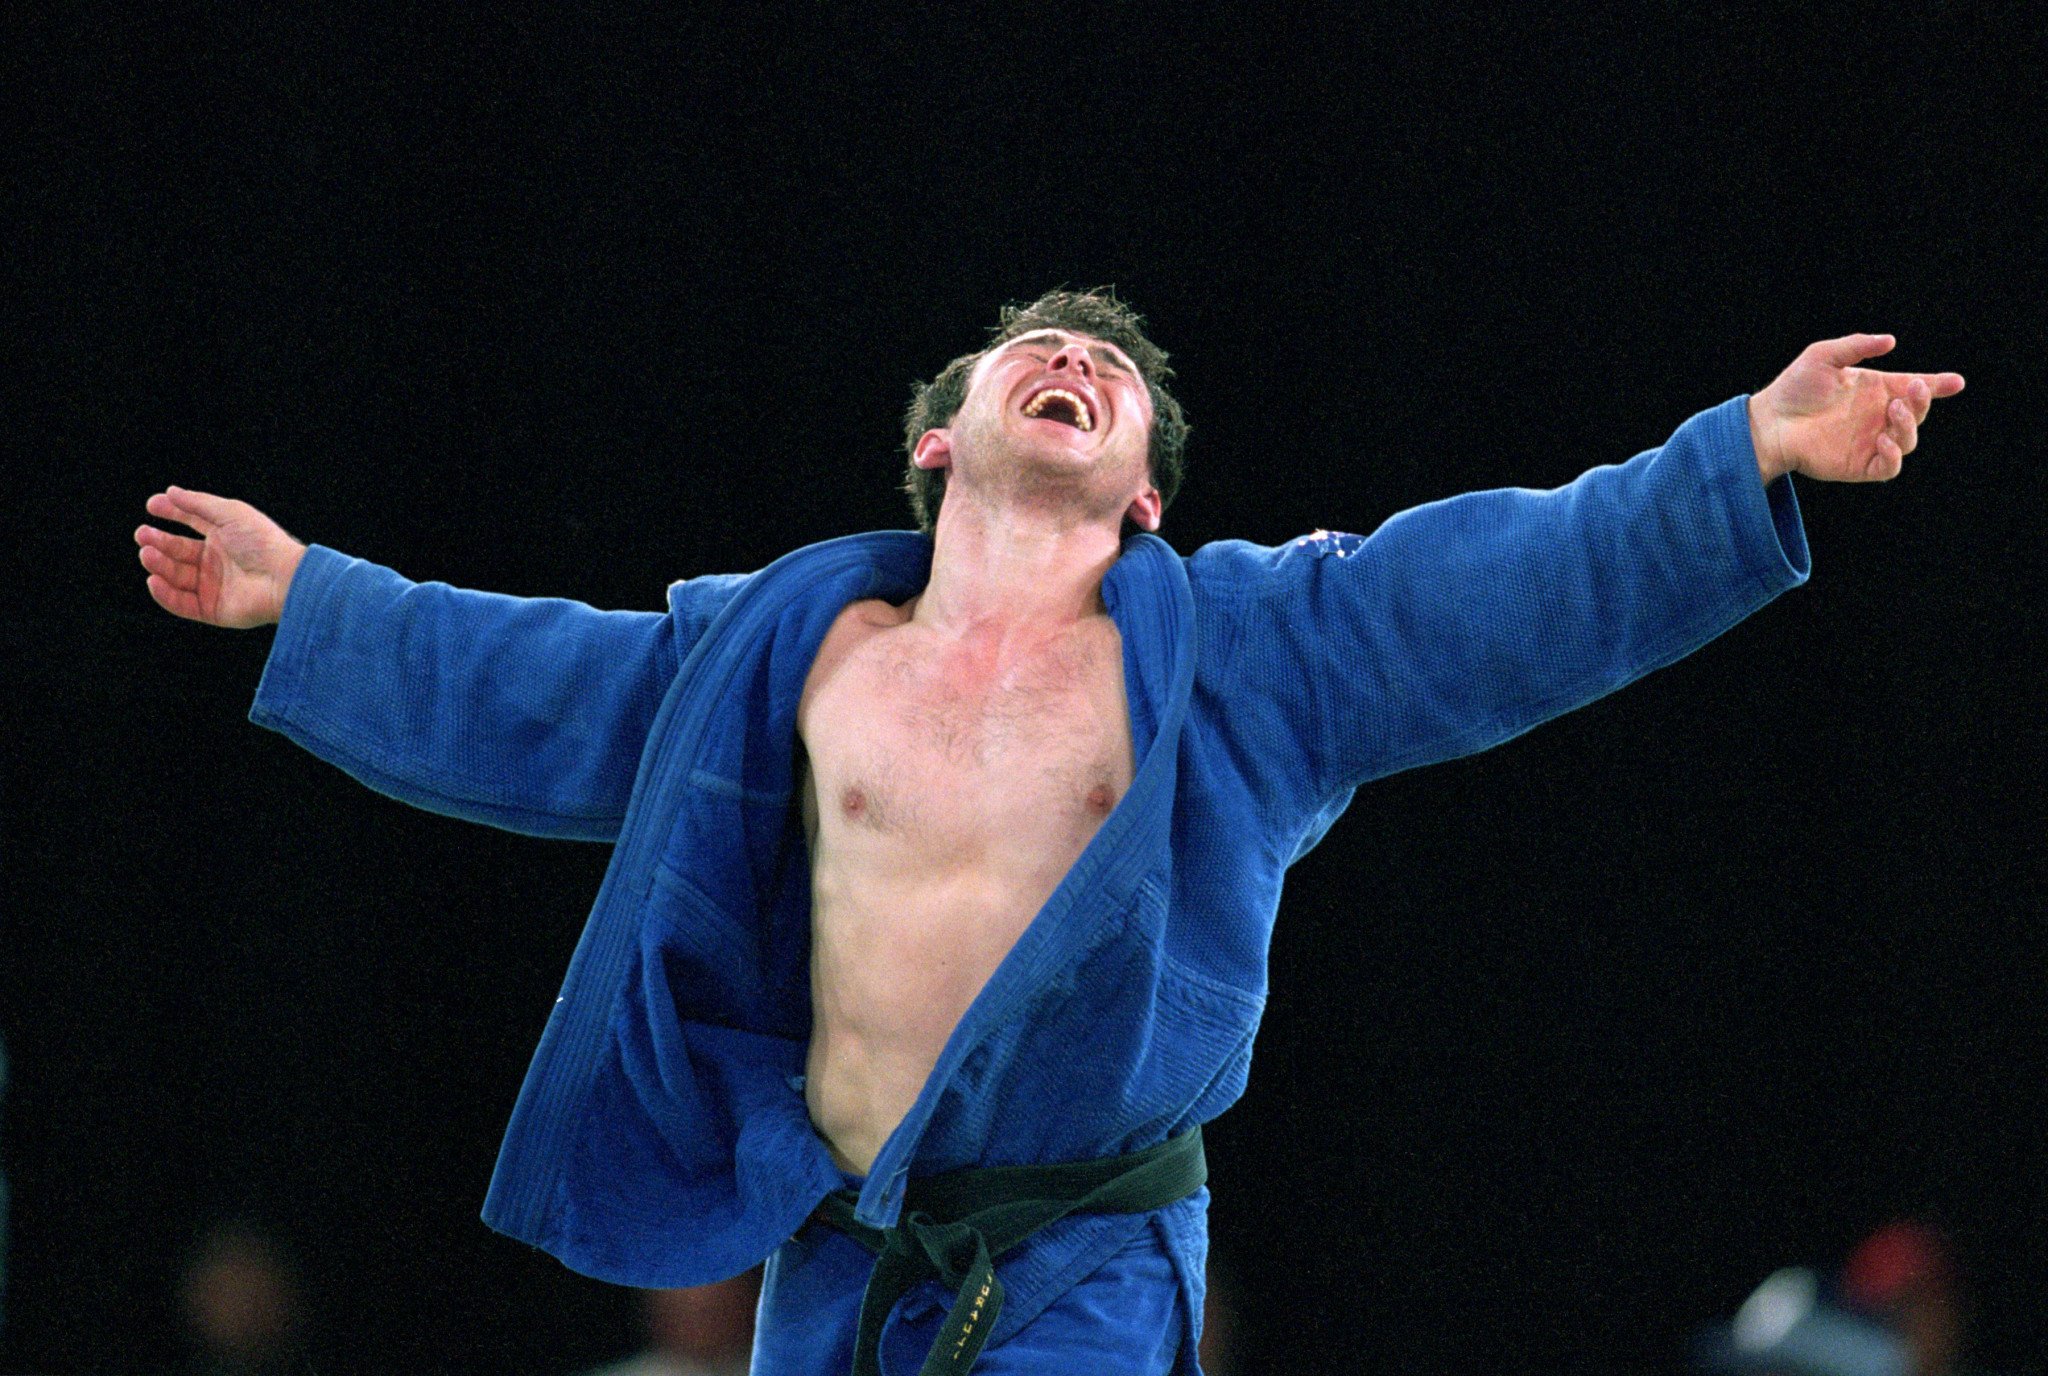 Giorgi Vazagashvili of Georgia celebrates bronze in the Men's 66kg Judo event at the Exhibition Halls in Darling Harbour on Day Two of the Sydney 2000 Olympic Games in Sydney, Australia ©Getty Images